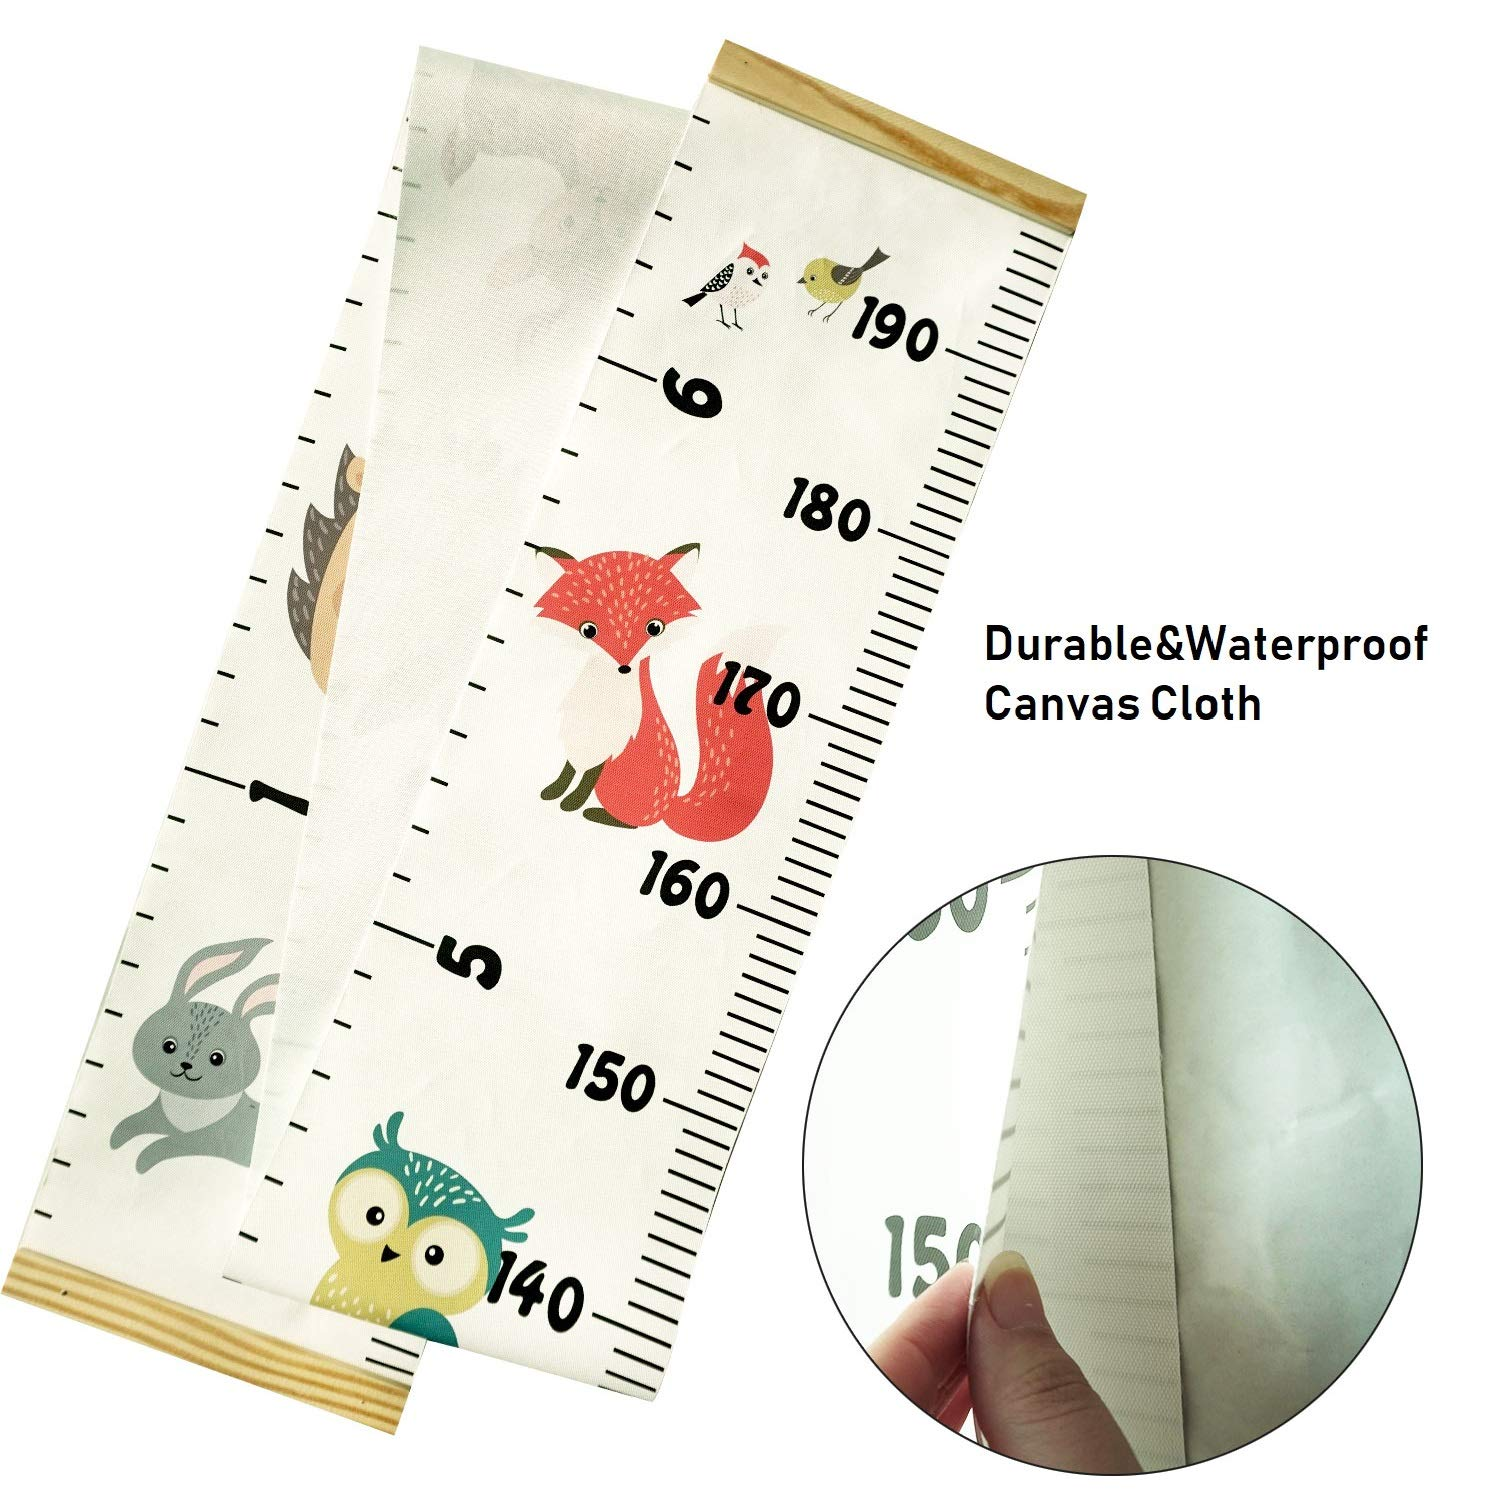 Girls Kids Room Familamb Kids Growth Chart Wall Ruler Wood Frame Fabric Canvas Height Measurement Ruler for Boys Wall Decor Car Toddlers Great for Nurseries